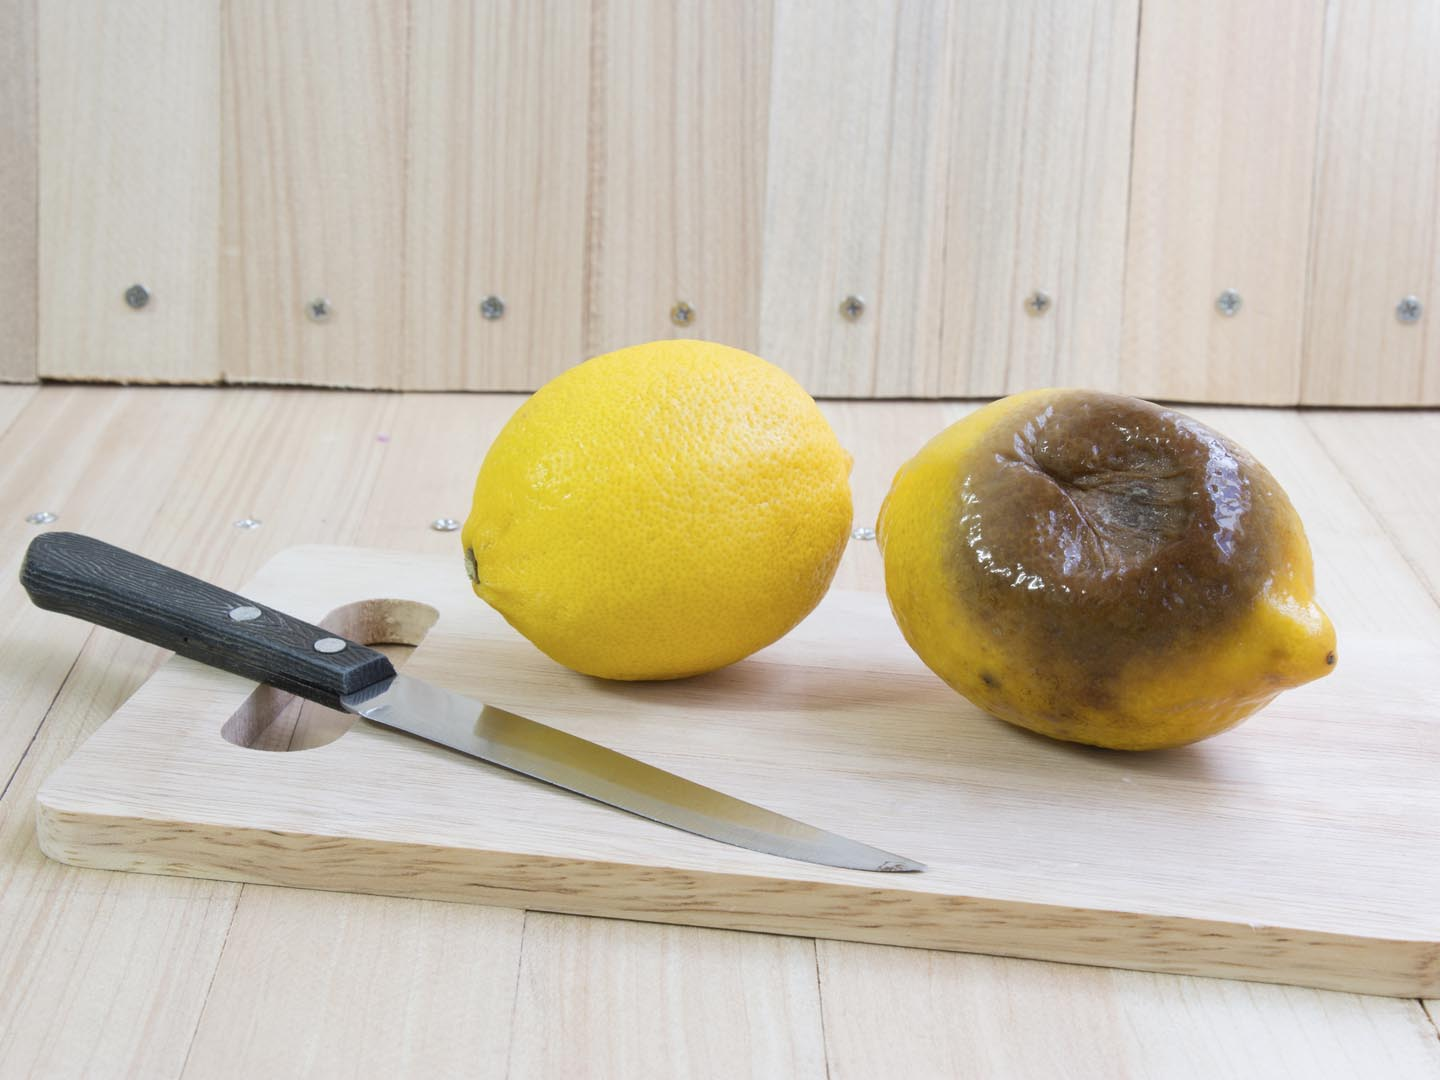 how dangerous is mold on food ask dr weil food safety q a fresh lemon and rotten lemon put on chopping block